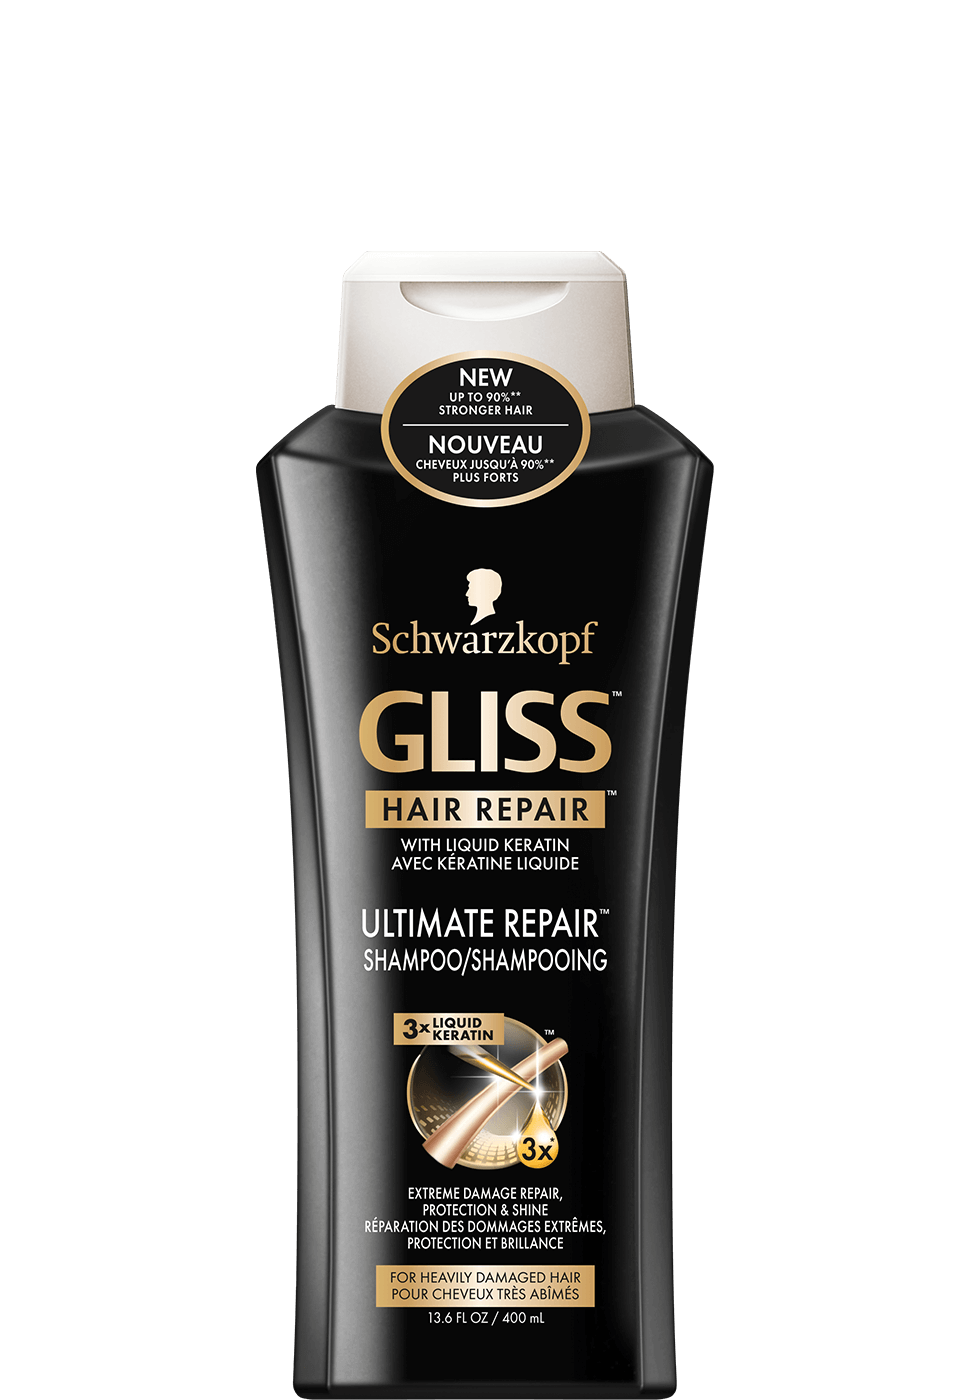 gliss_en_ultimate_repair_shampoo_970x1400